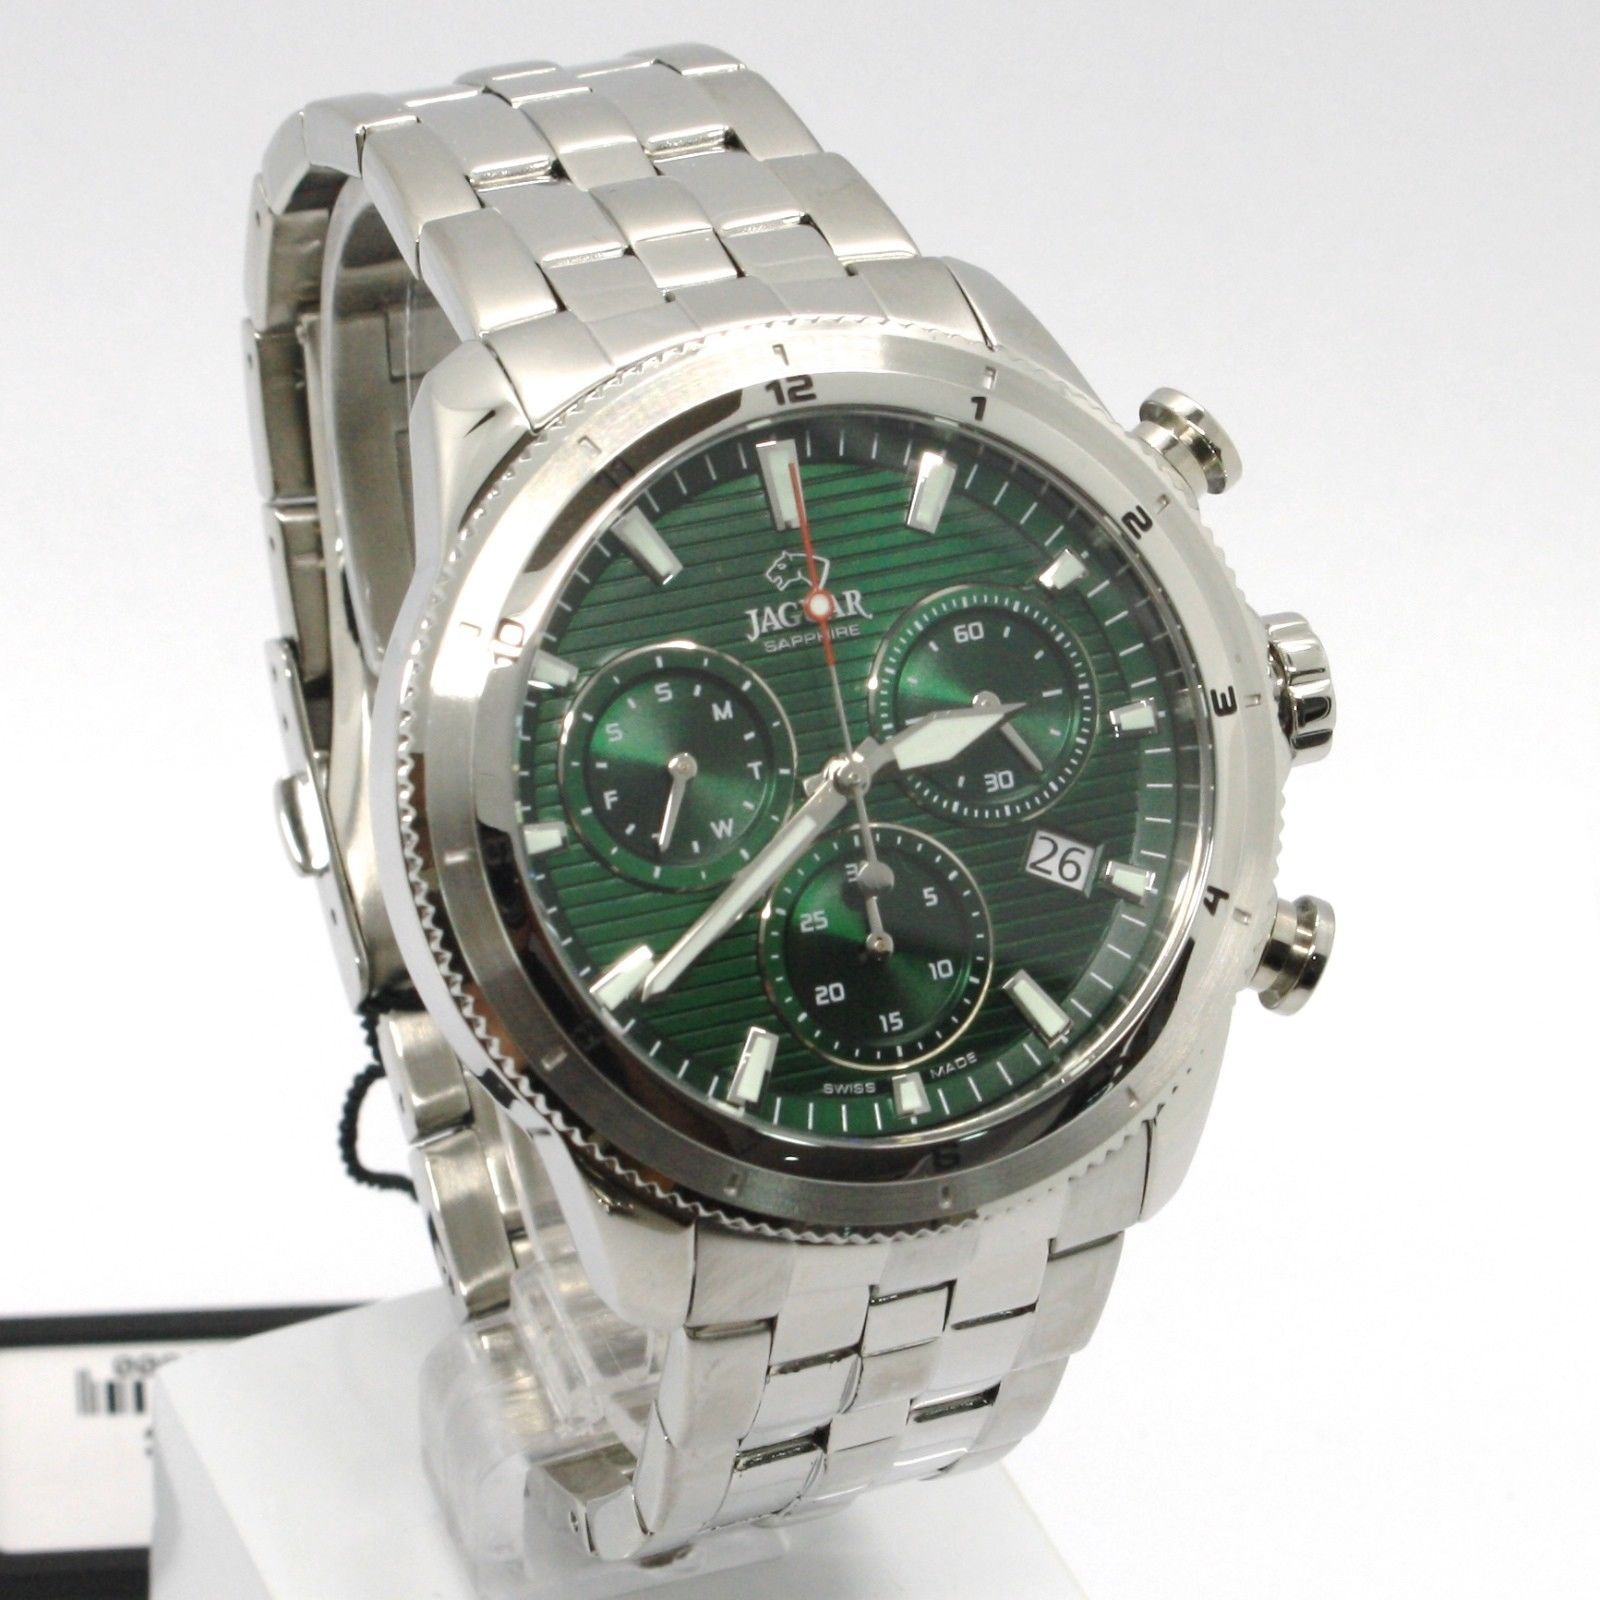 JAGUAR WATCH, SWISS MADE, SAPPHIRE CRYSTAL, 45 MM CASE, GREEN, CHRONOGRAPH, DATE